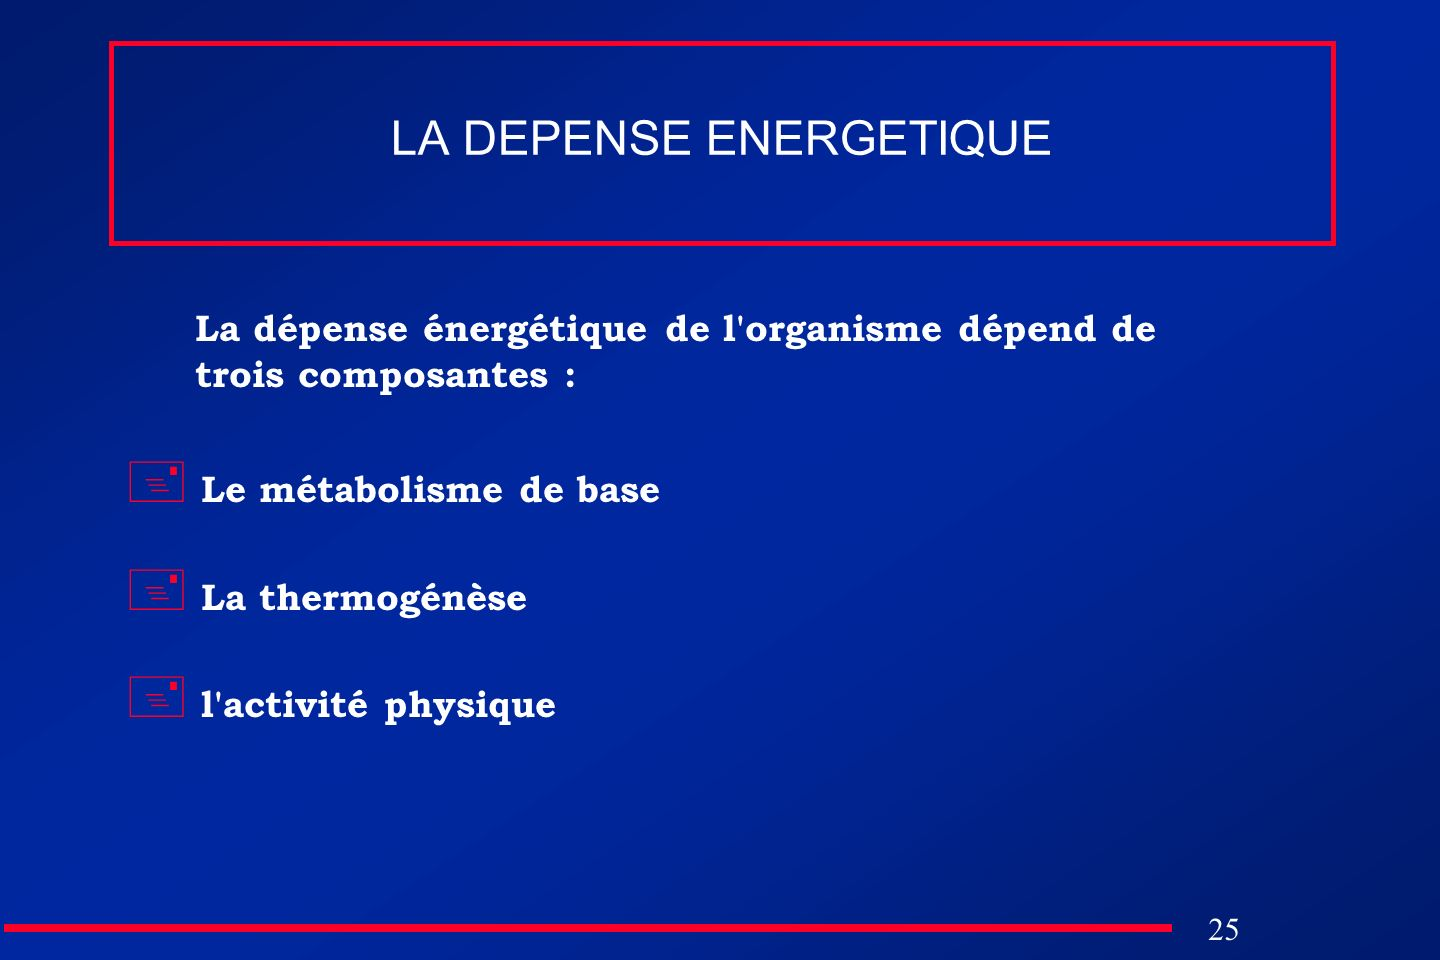 LA DEPENSE ENERGETIQUE